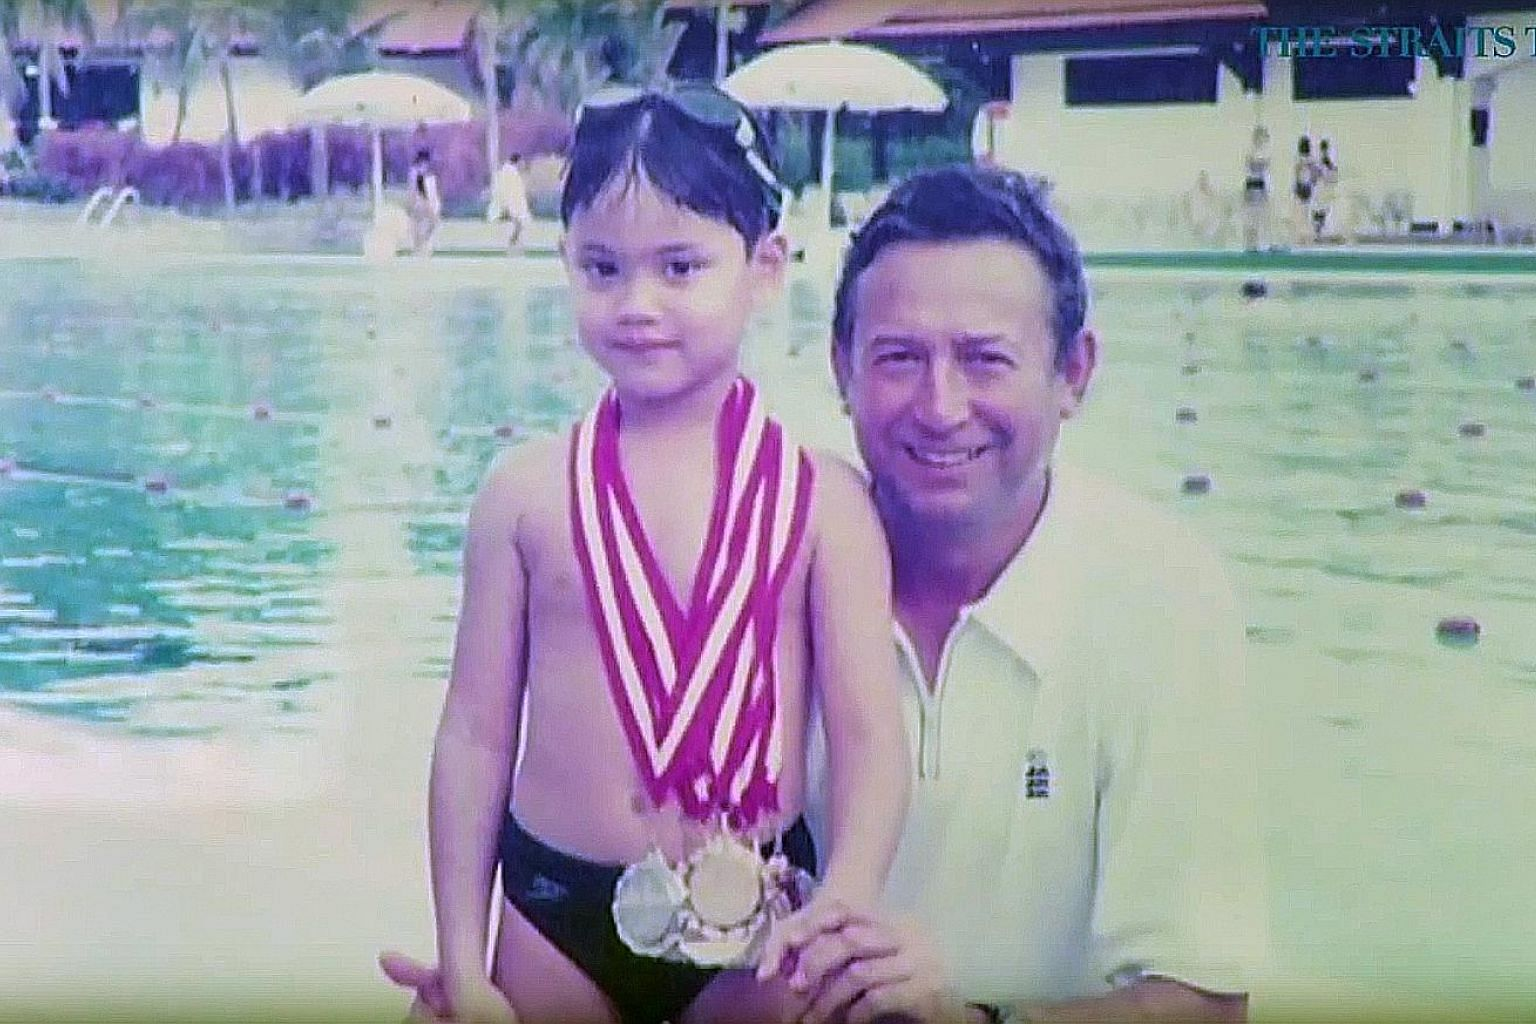 A young Joseph Schooling and his father Colin after a swimming meet in Singapore. With the support of his parents, the boy chased his dreams and made Olympic history. ST FILE PHOTO